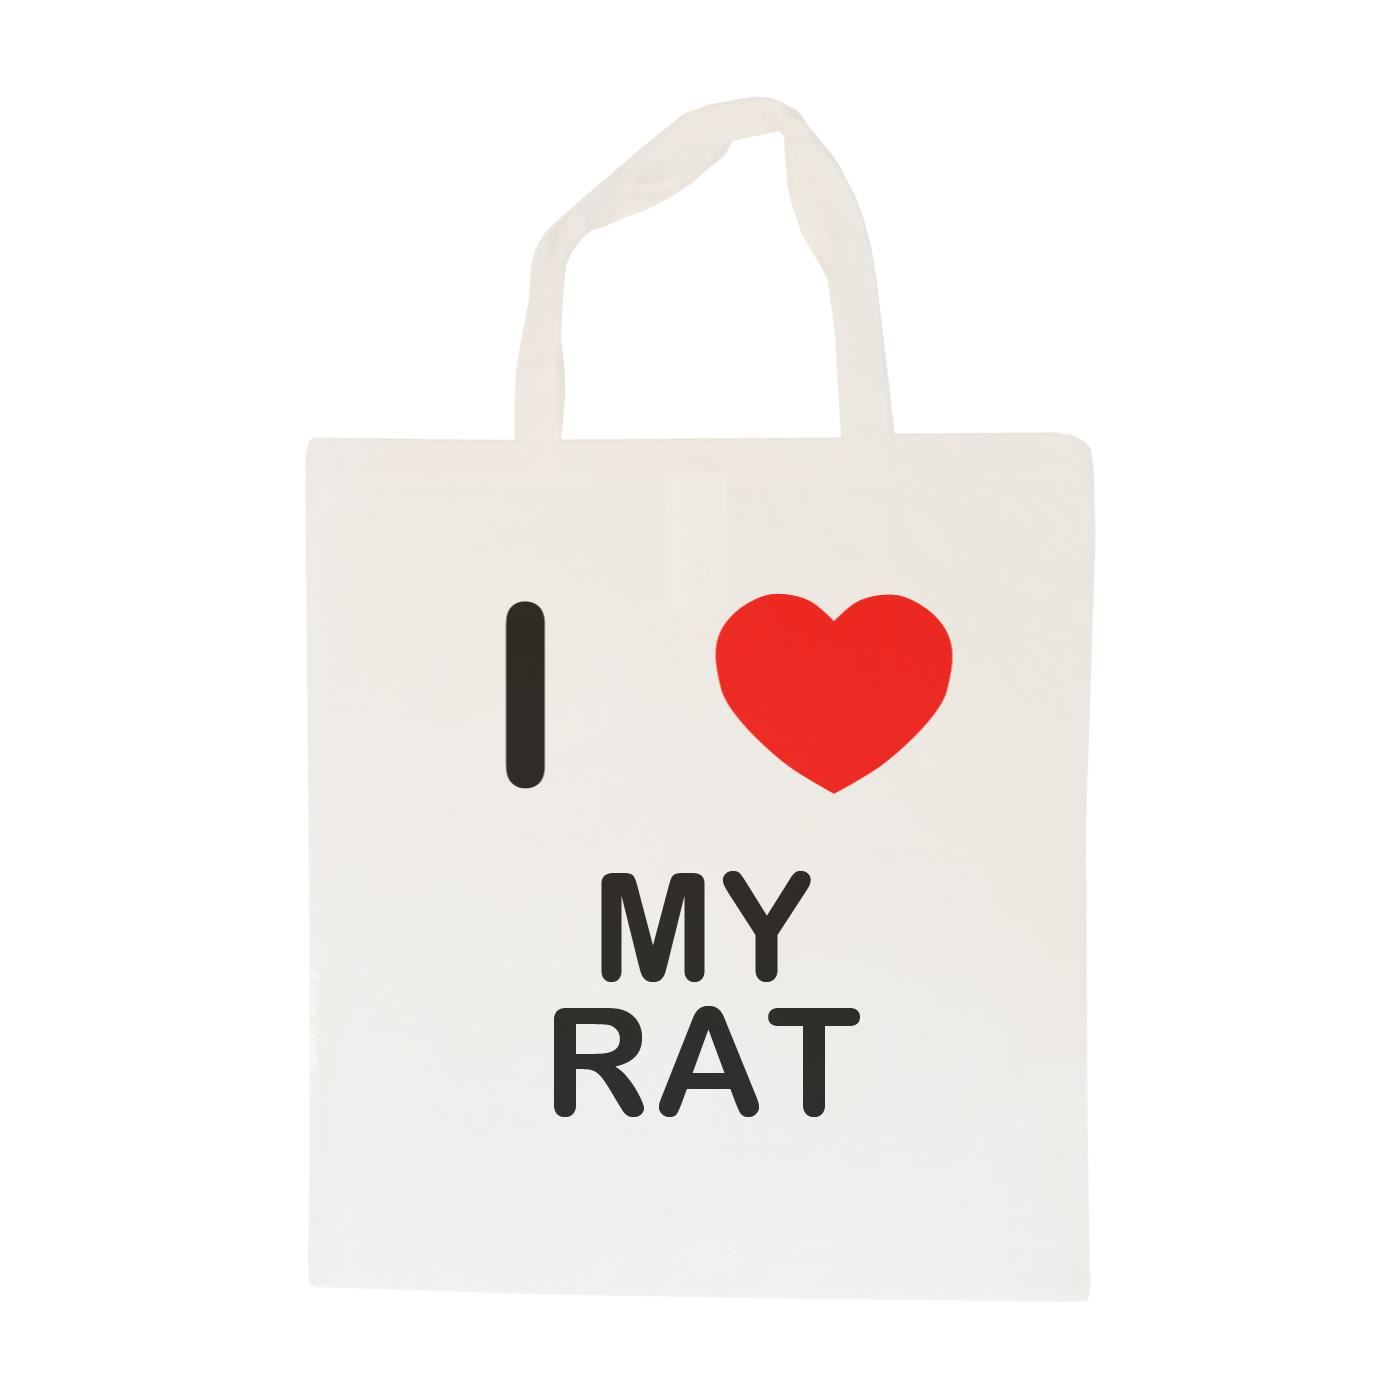 I Love My Rat - Cotton Bag | Size choice Tote, Shopper or Sling